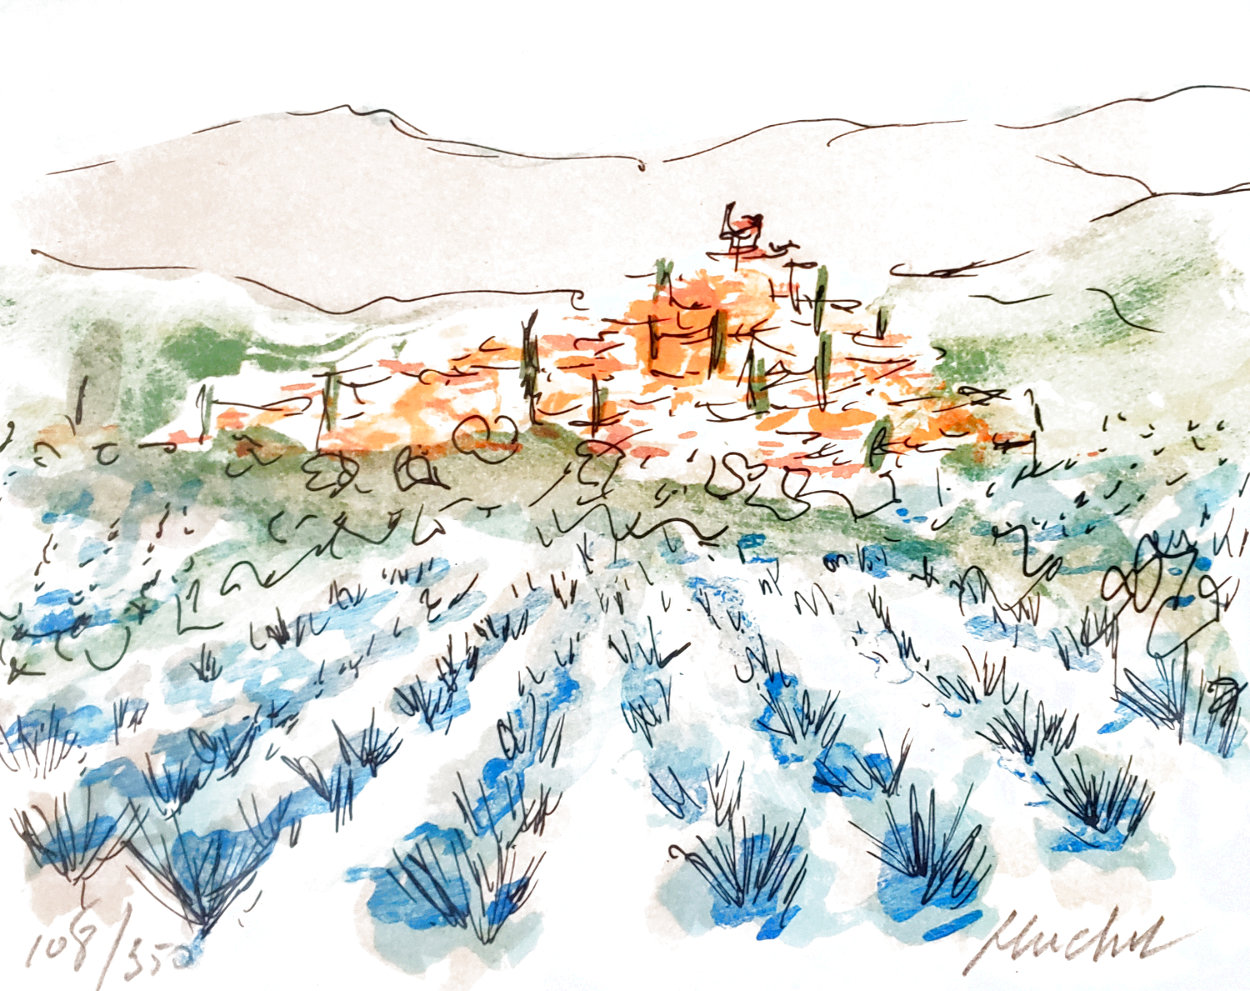 Lavender Field in Florence Limited Edition Print by Urbain Huchet